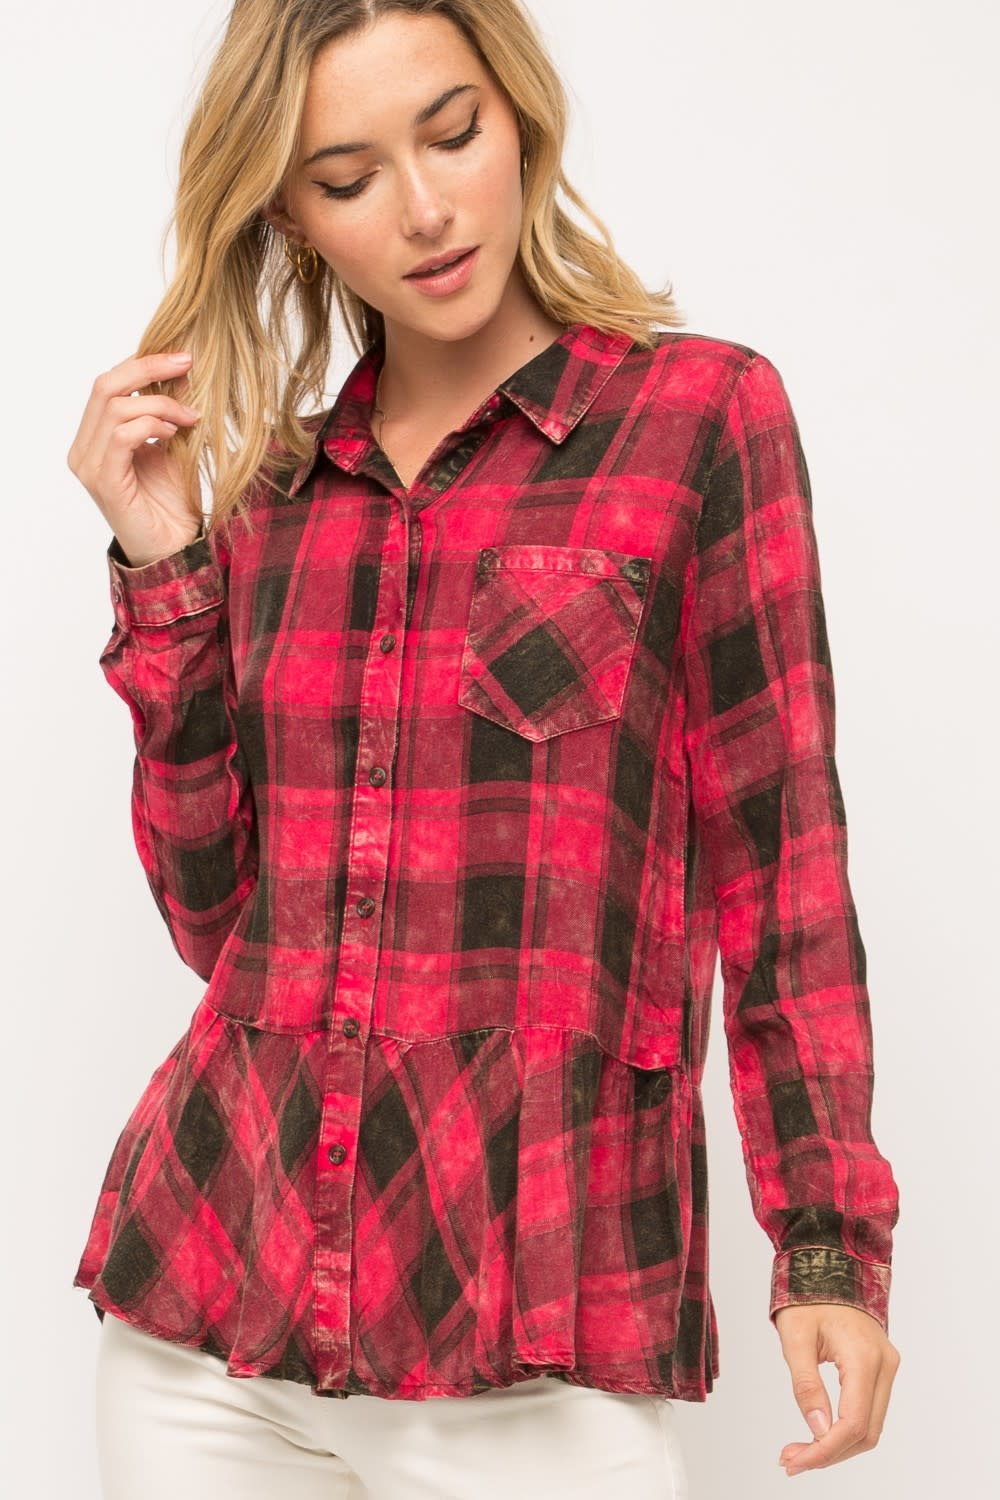 Washed Plaid Top With Ruffle Hem